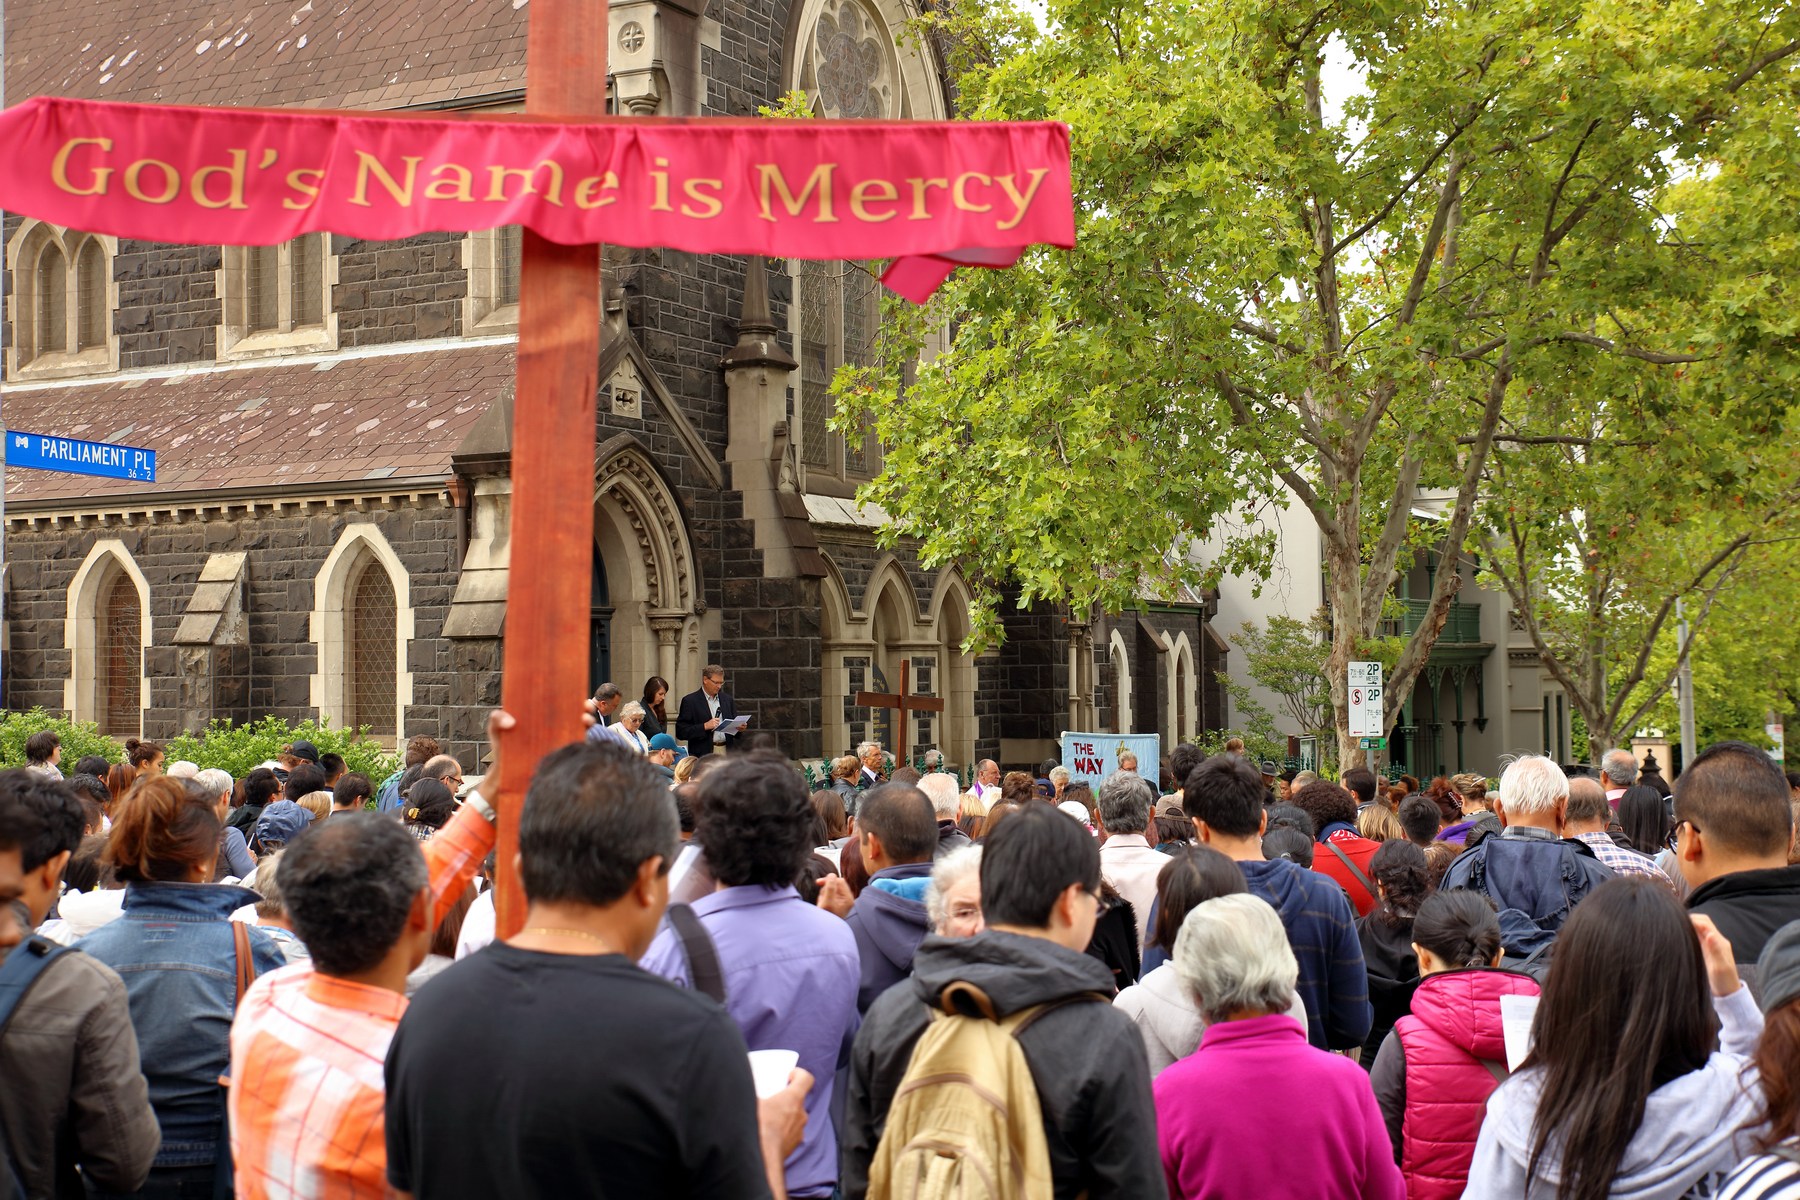 MCCIA Melbourne City Churches in Action Way of the Cross crowd at German Lutheran Trinity Church East Melbourne